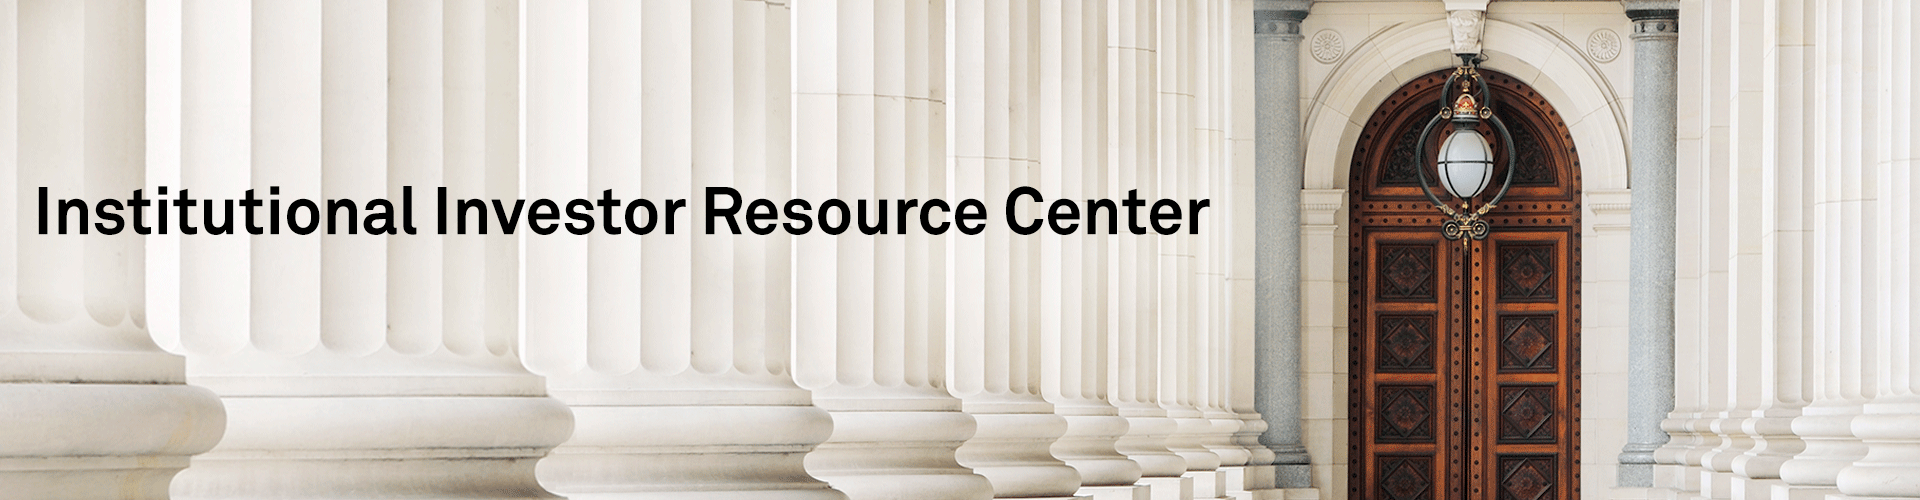 Institutional Investor Resource Center